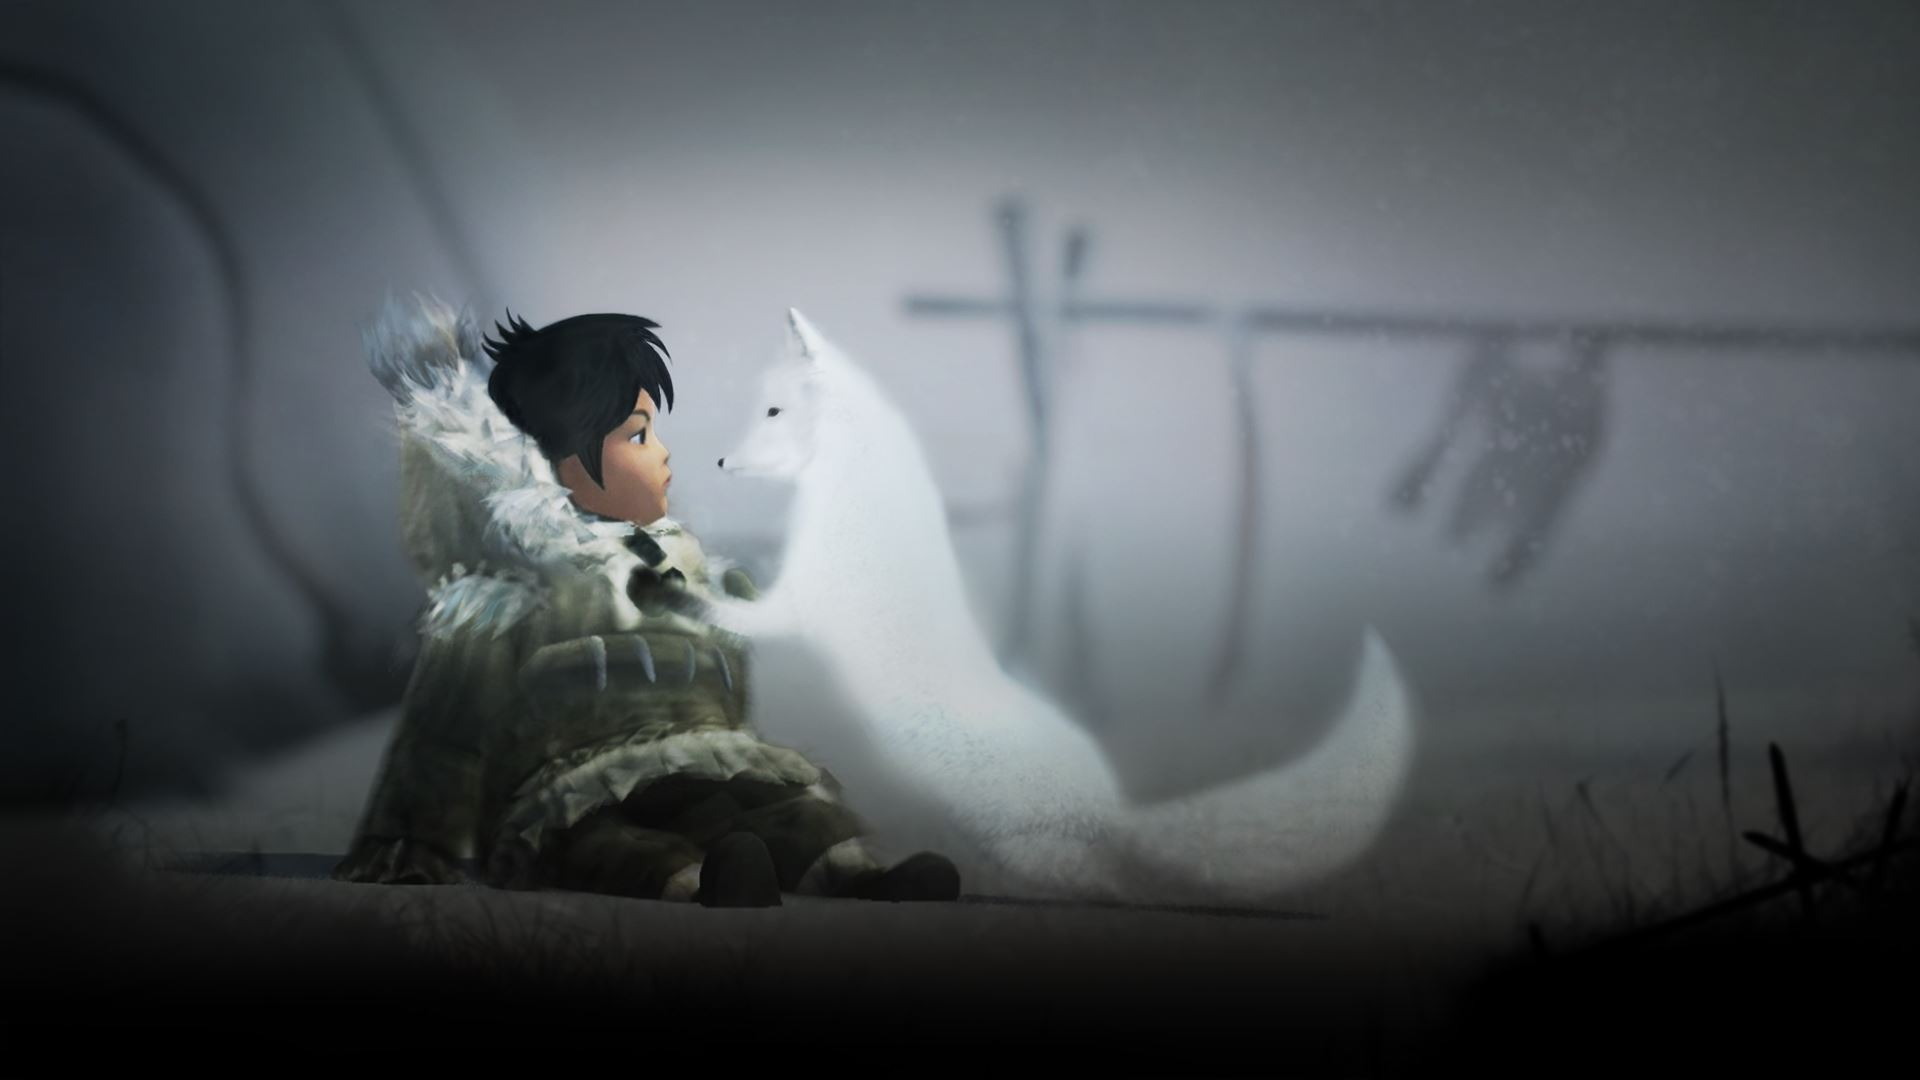 Nuna, from Never Alone